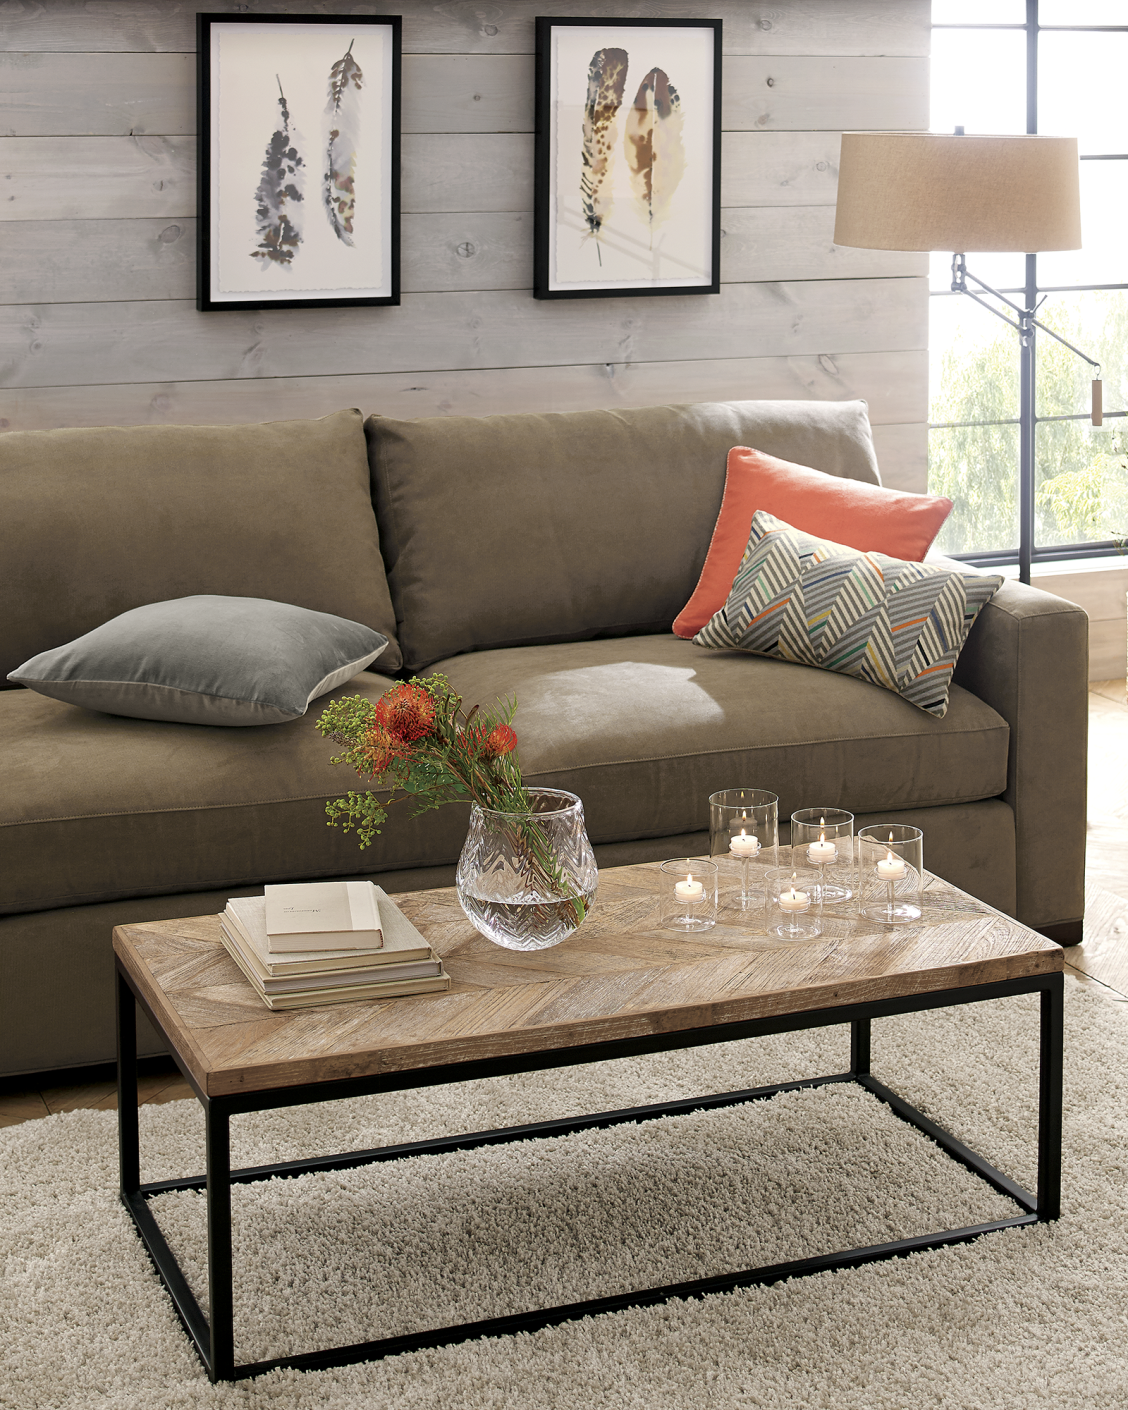 Top 6 Coffee Table Decor Ideas Crate And Barrel Coffee Table Cool Coffee Tables Coffee Table Crate And Barrel [ 1410 x 1128 Pixel ]